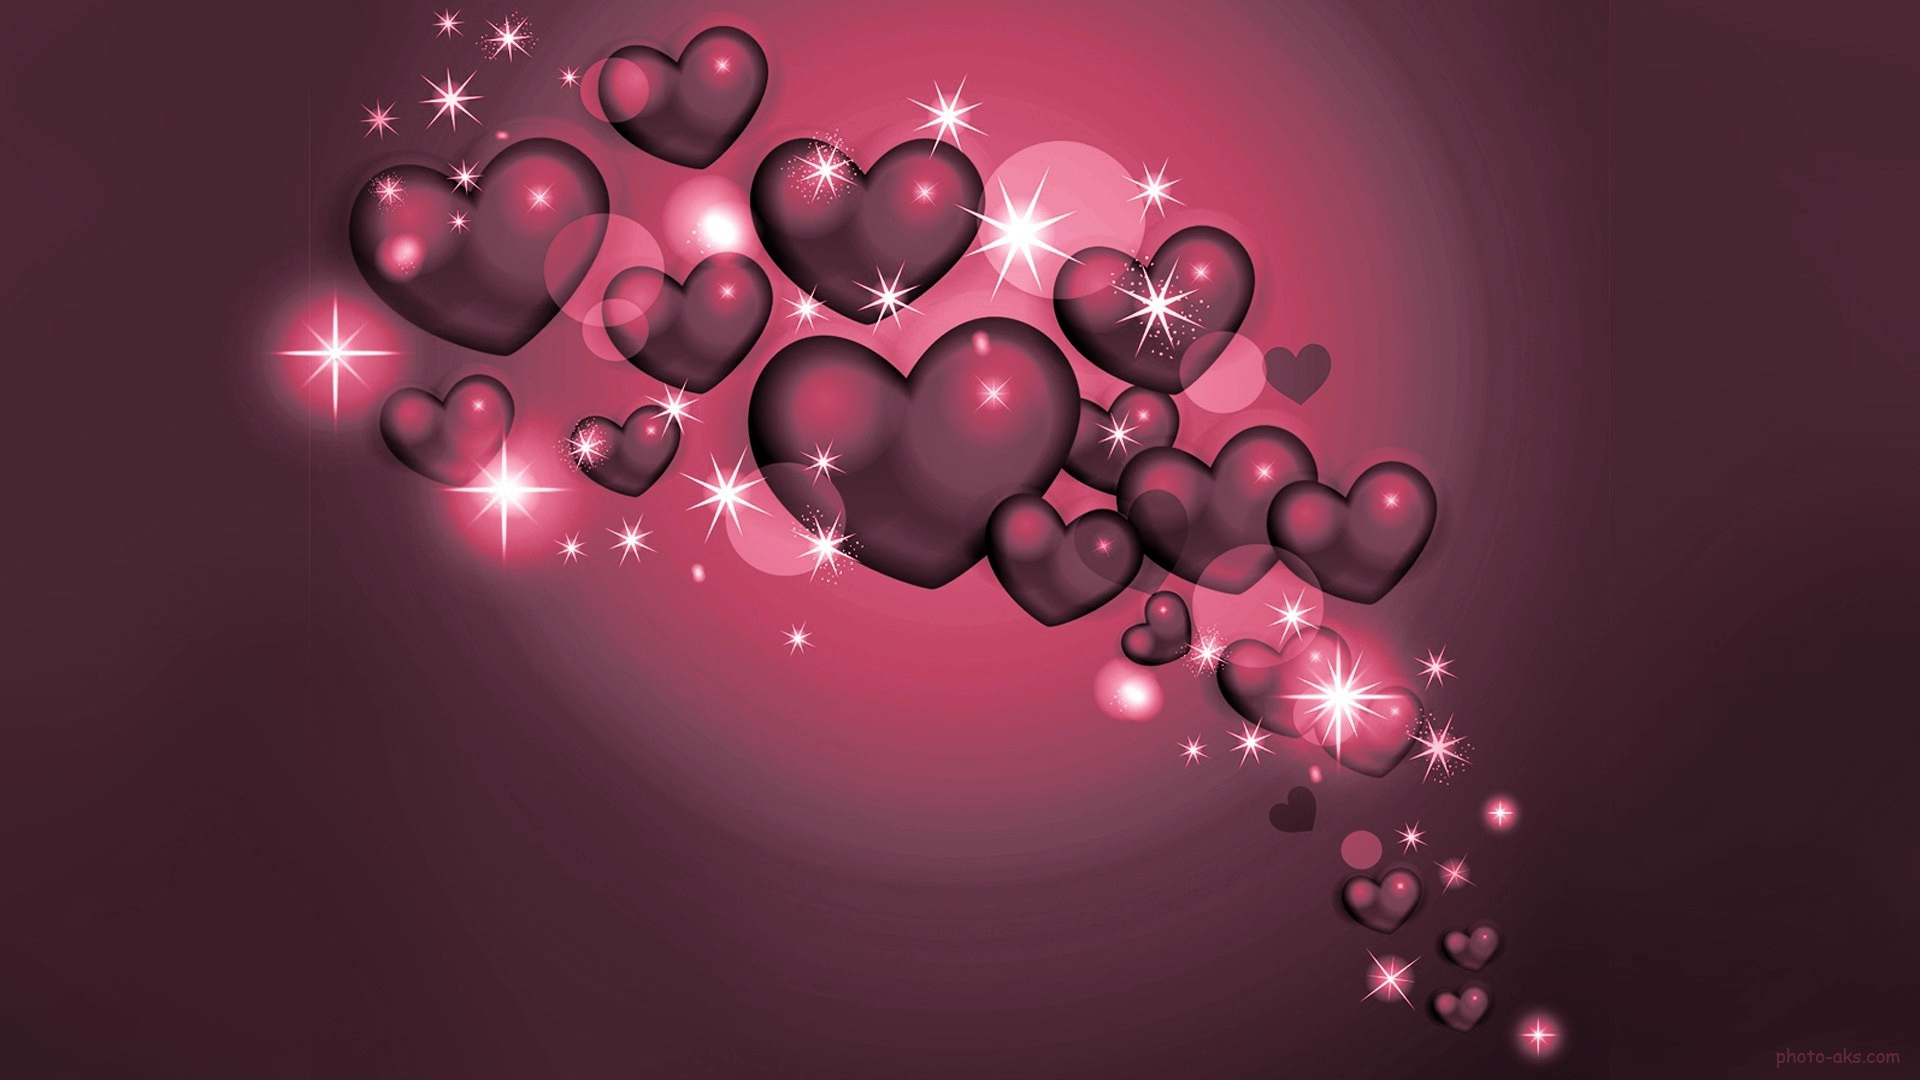 3d Love Live Wallpaper For Pc : Pin Pin 3d Love Heart Free Wallpapers On Pinterest on Pinterest